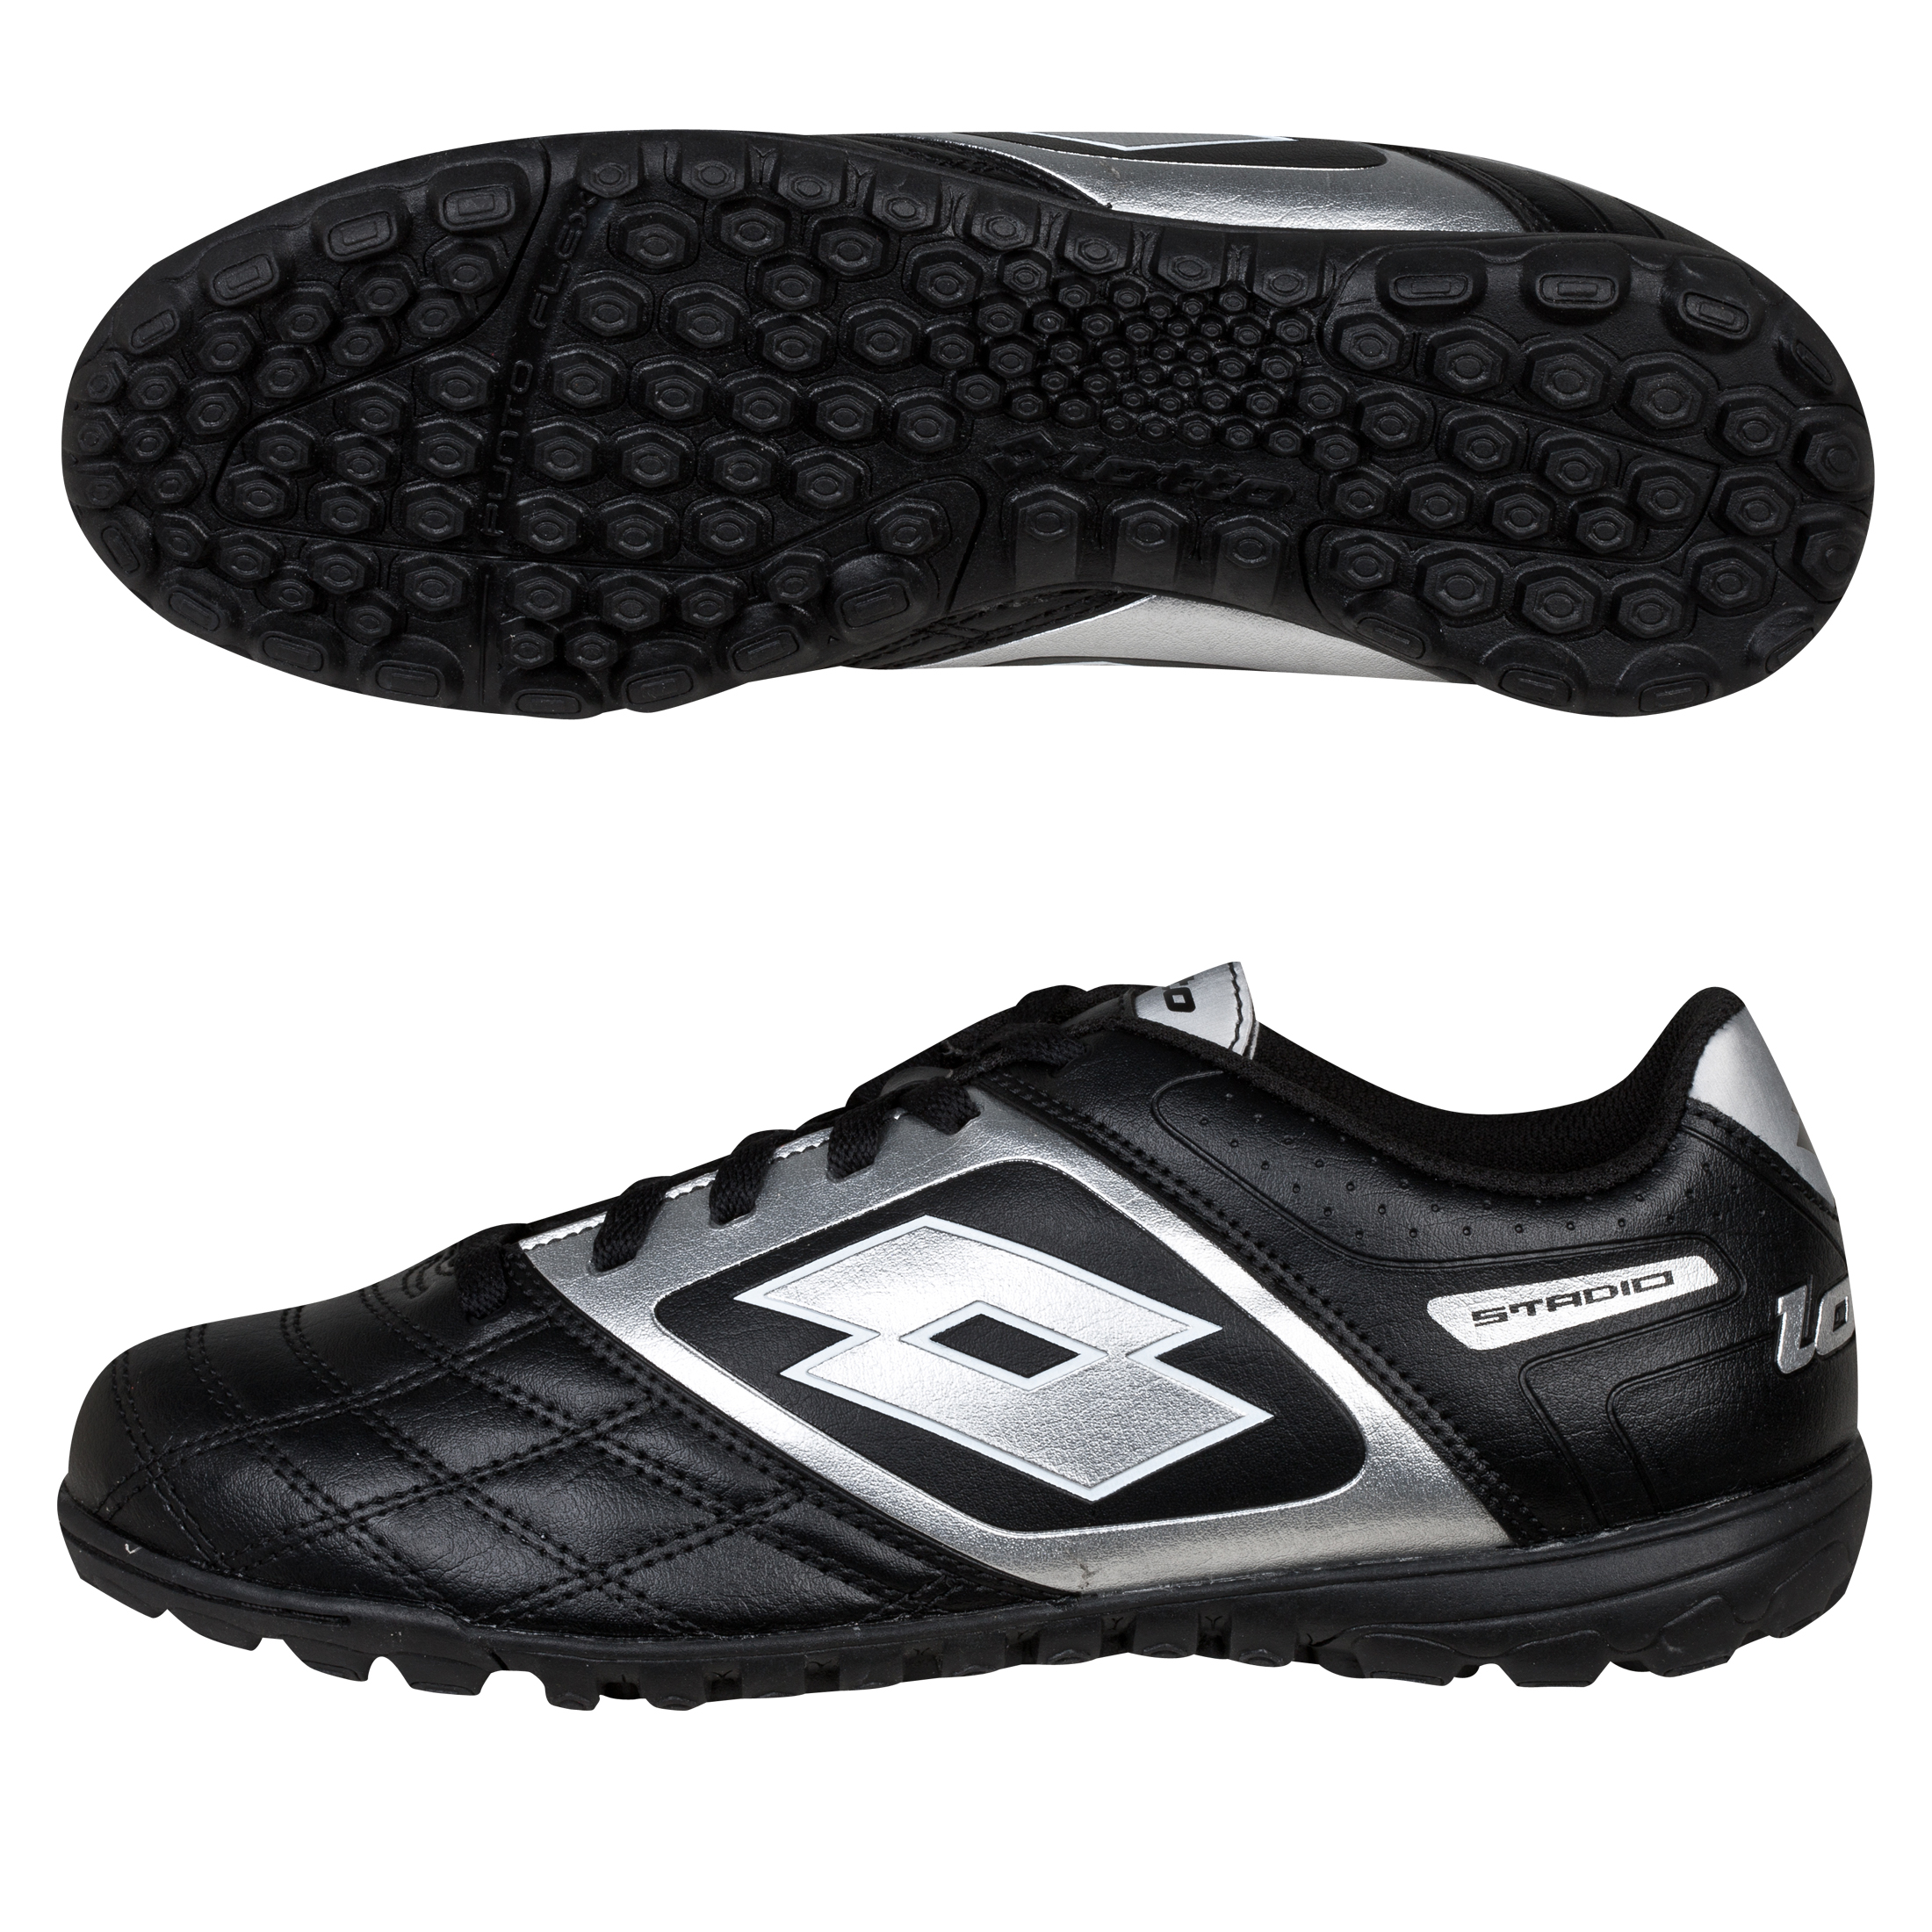 Lotto Stadio Potenza.II 700 Astro Turf Trainers - Black/Silver - Kids